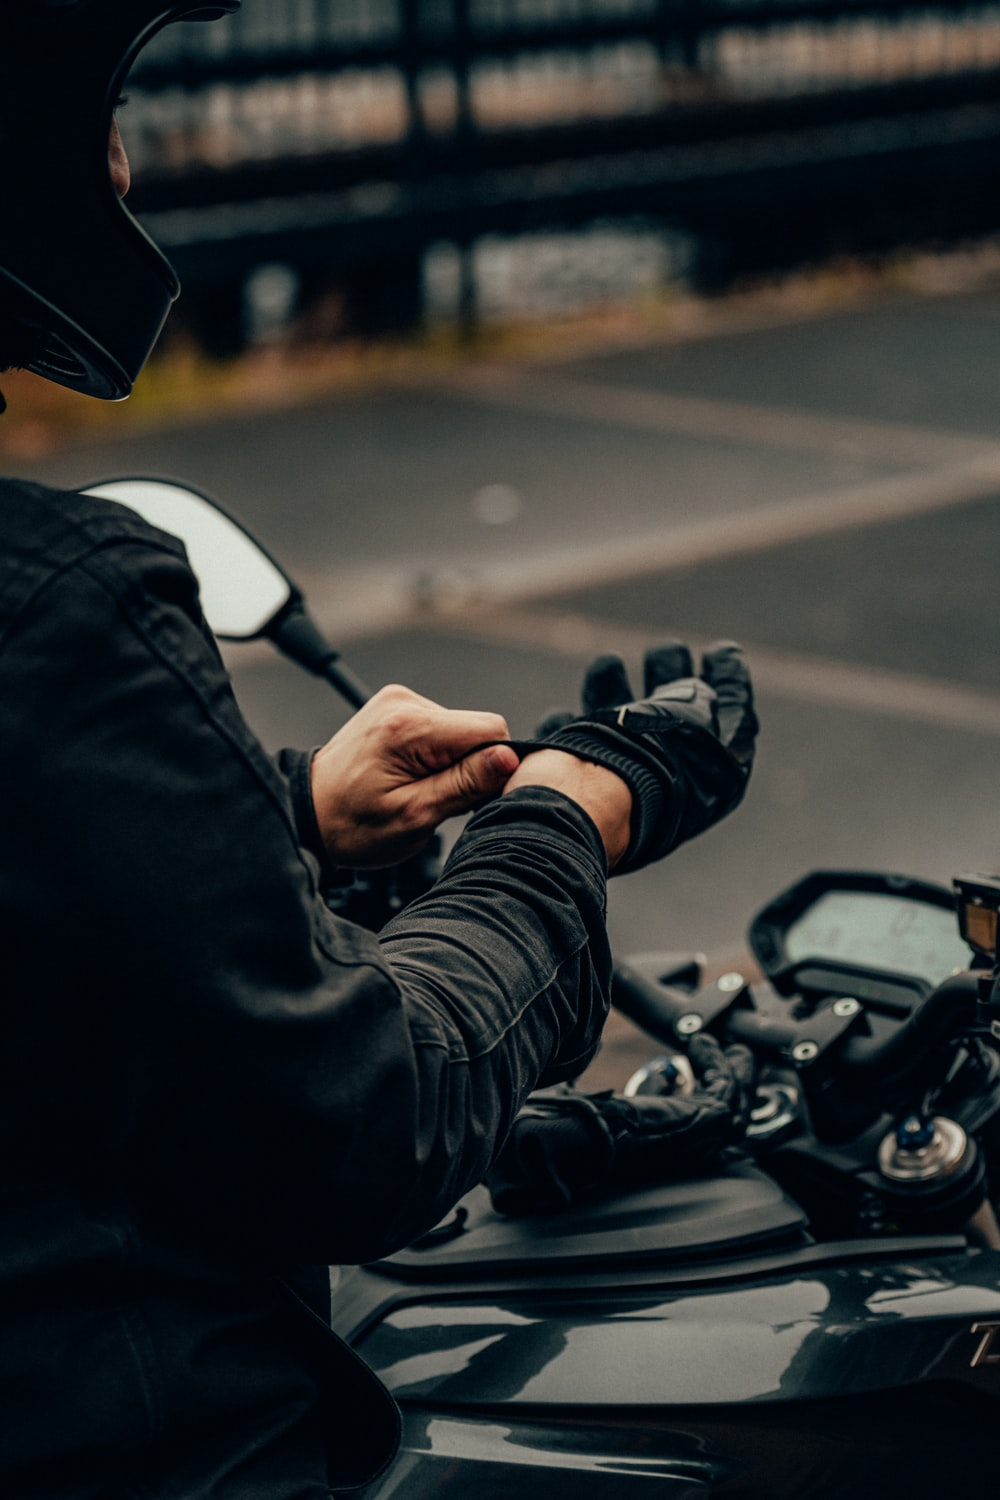 person in black jacket driving motorcycle